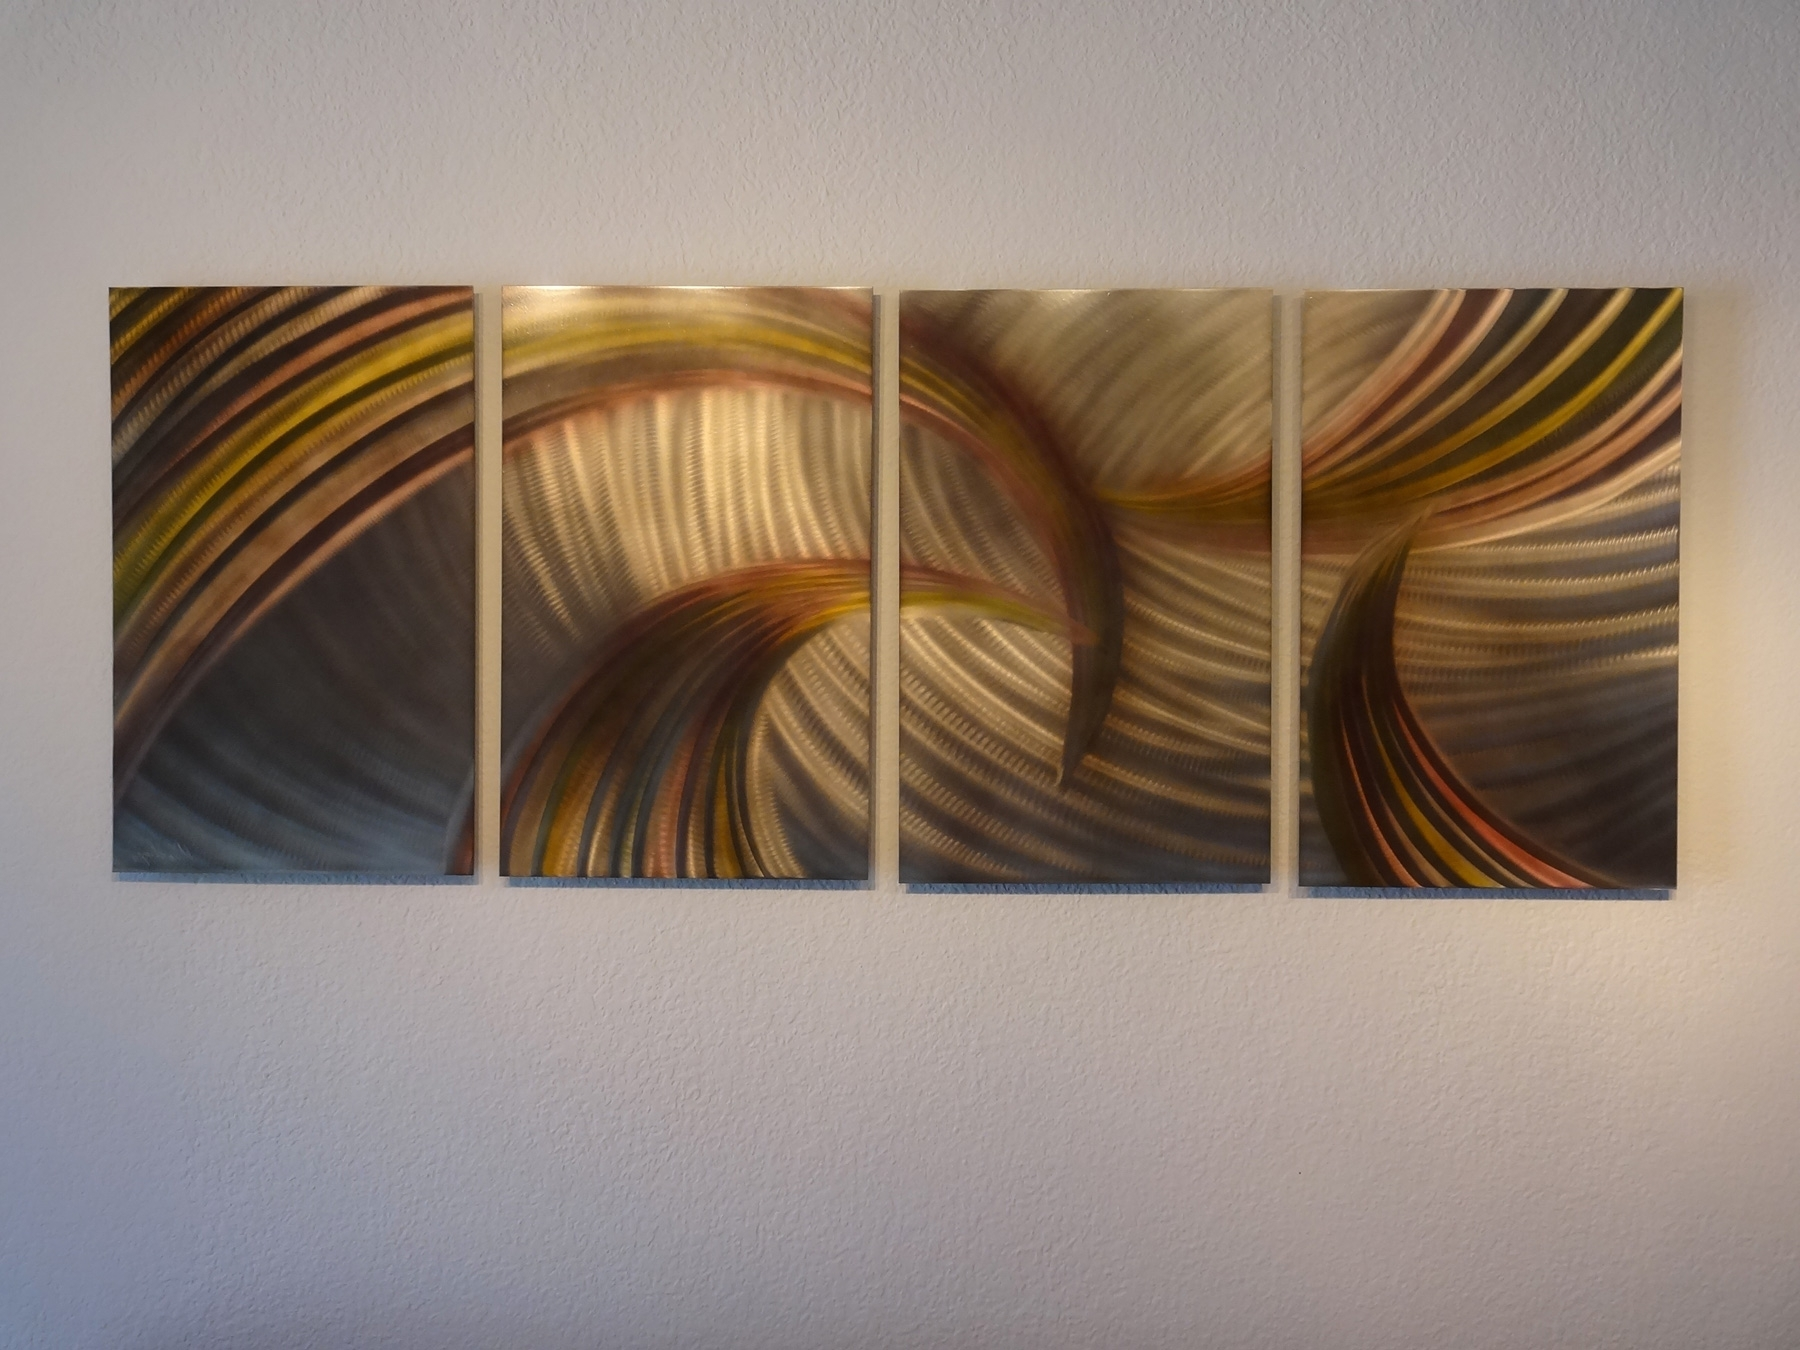 Bronze Wall Art Within Most Current Tempest Bronze – Abstract Metal Wall Art Contemporary Modern Decor (View 7 of 20)